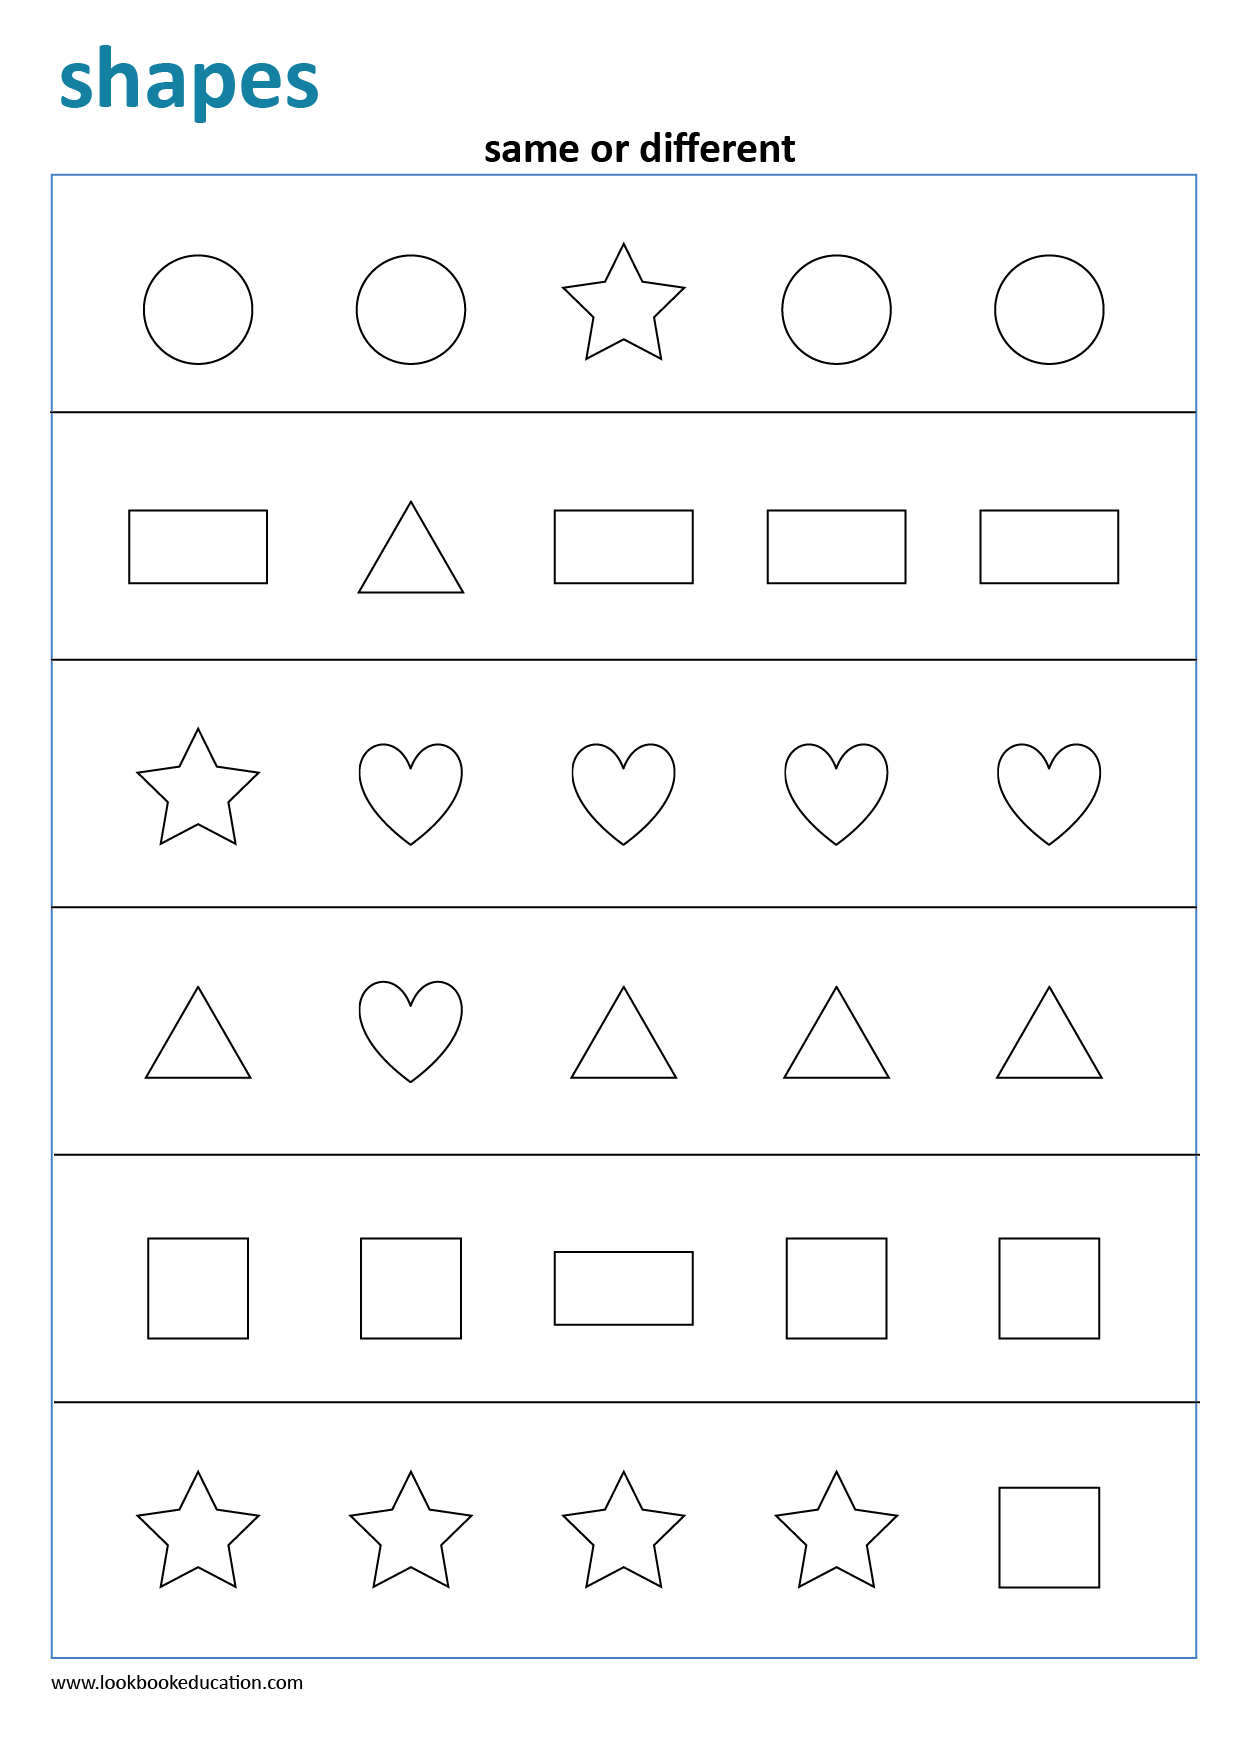 Photo of Same or Different Shapes Worksheet